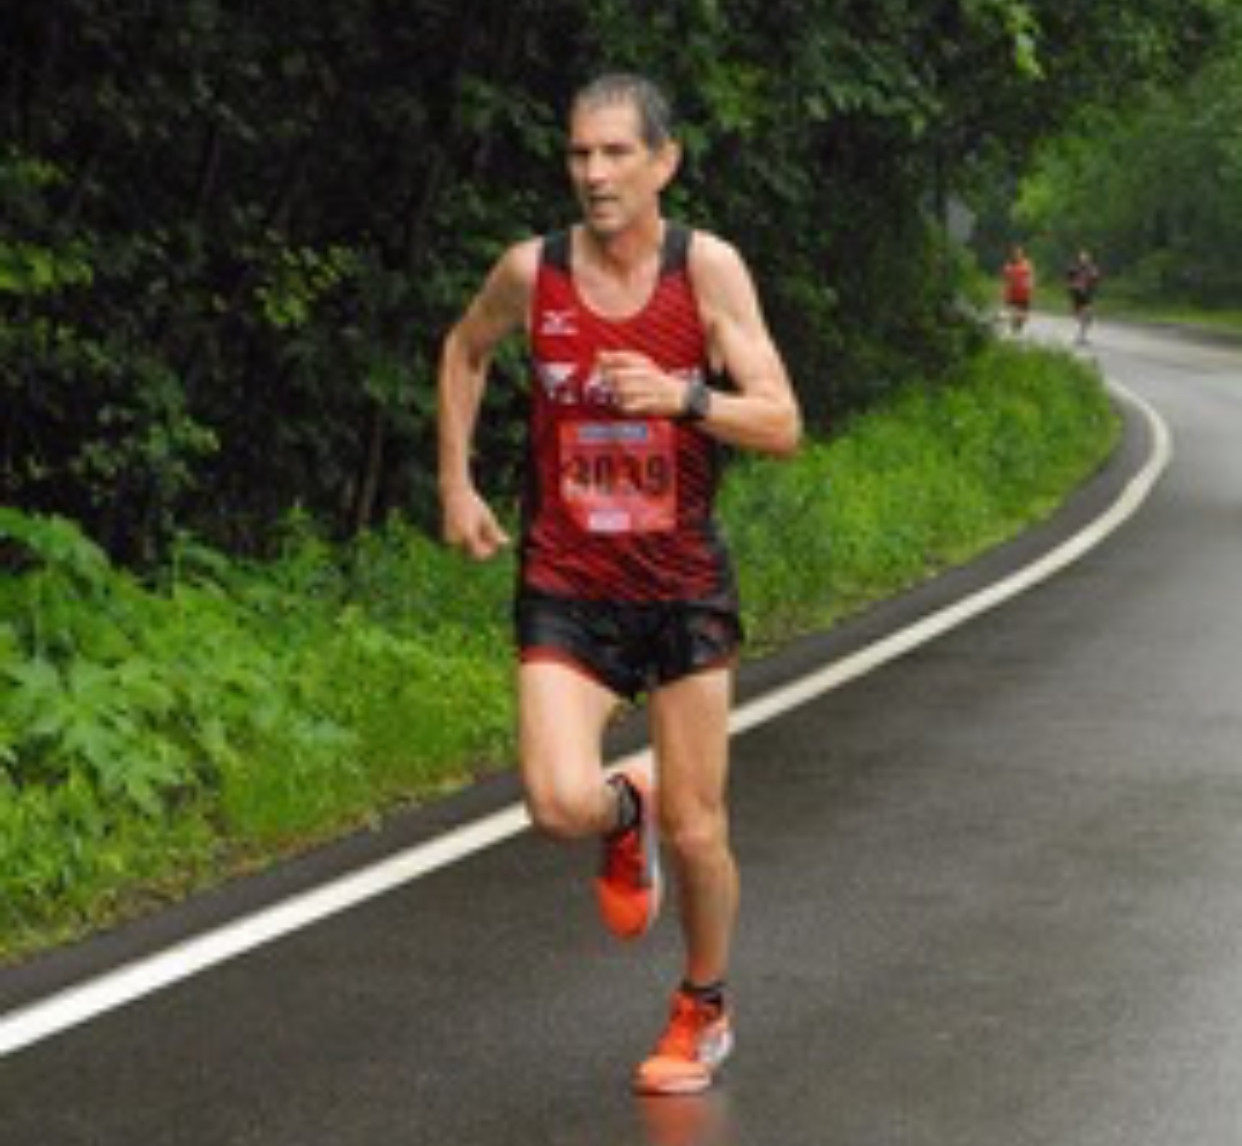 Global Run Challenge Profile: Running does not define Michael T Anderson but it is an integral part of his daily life